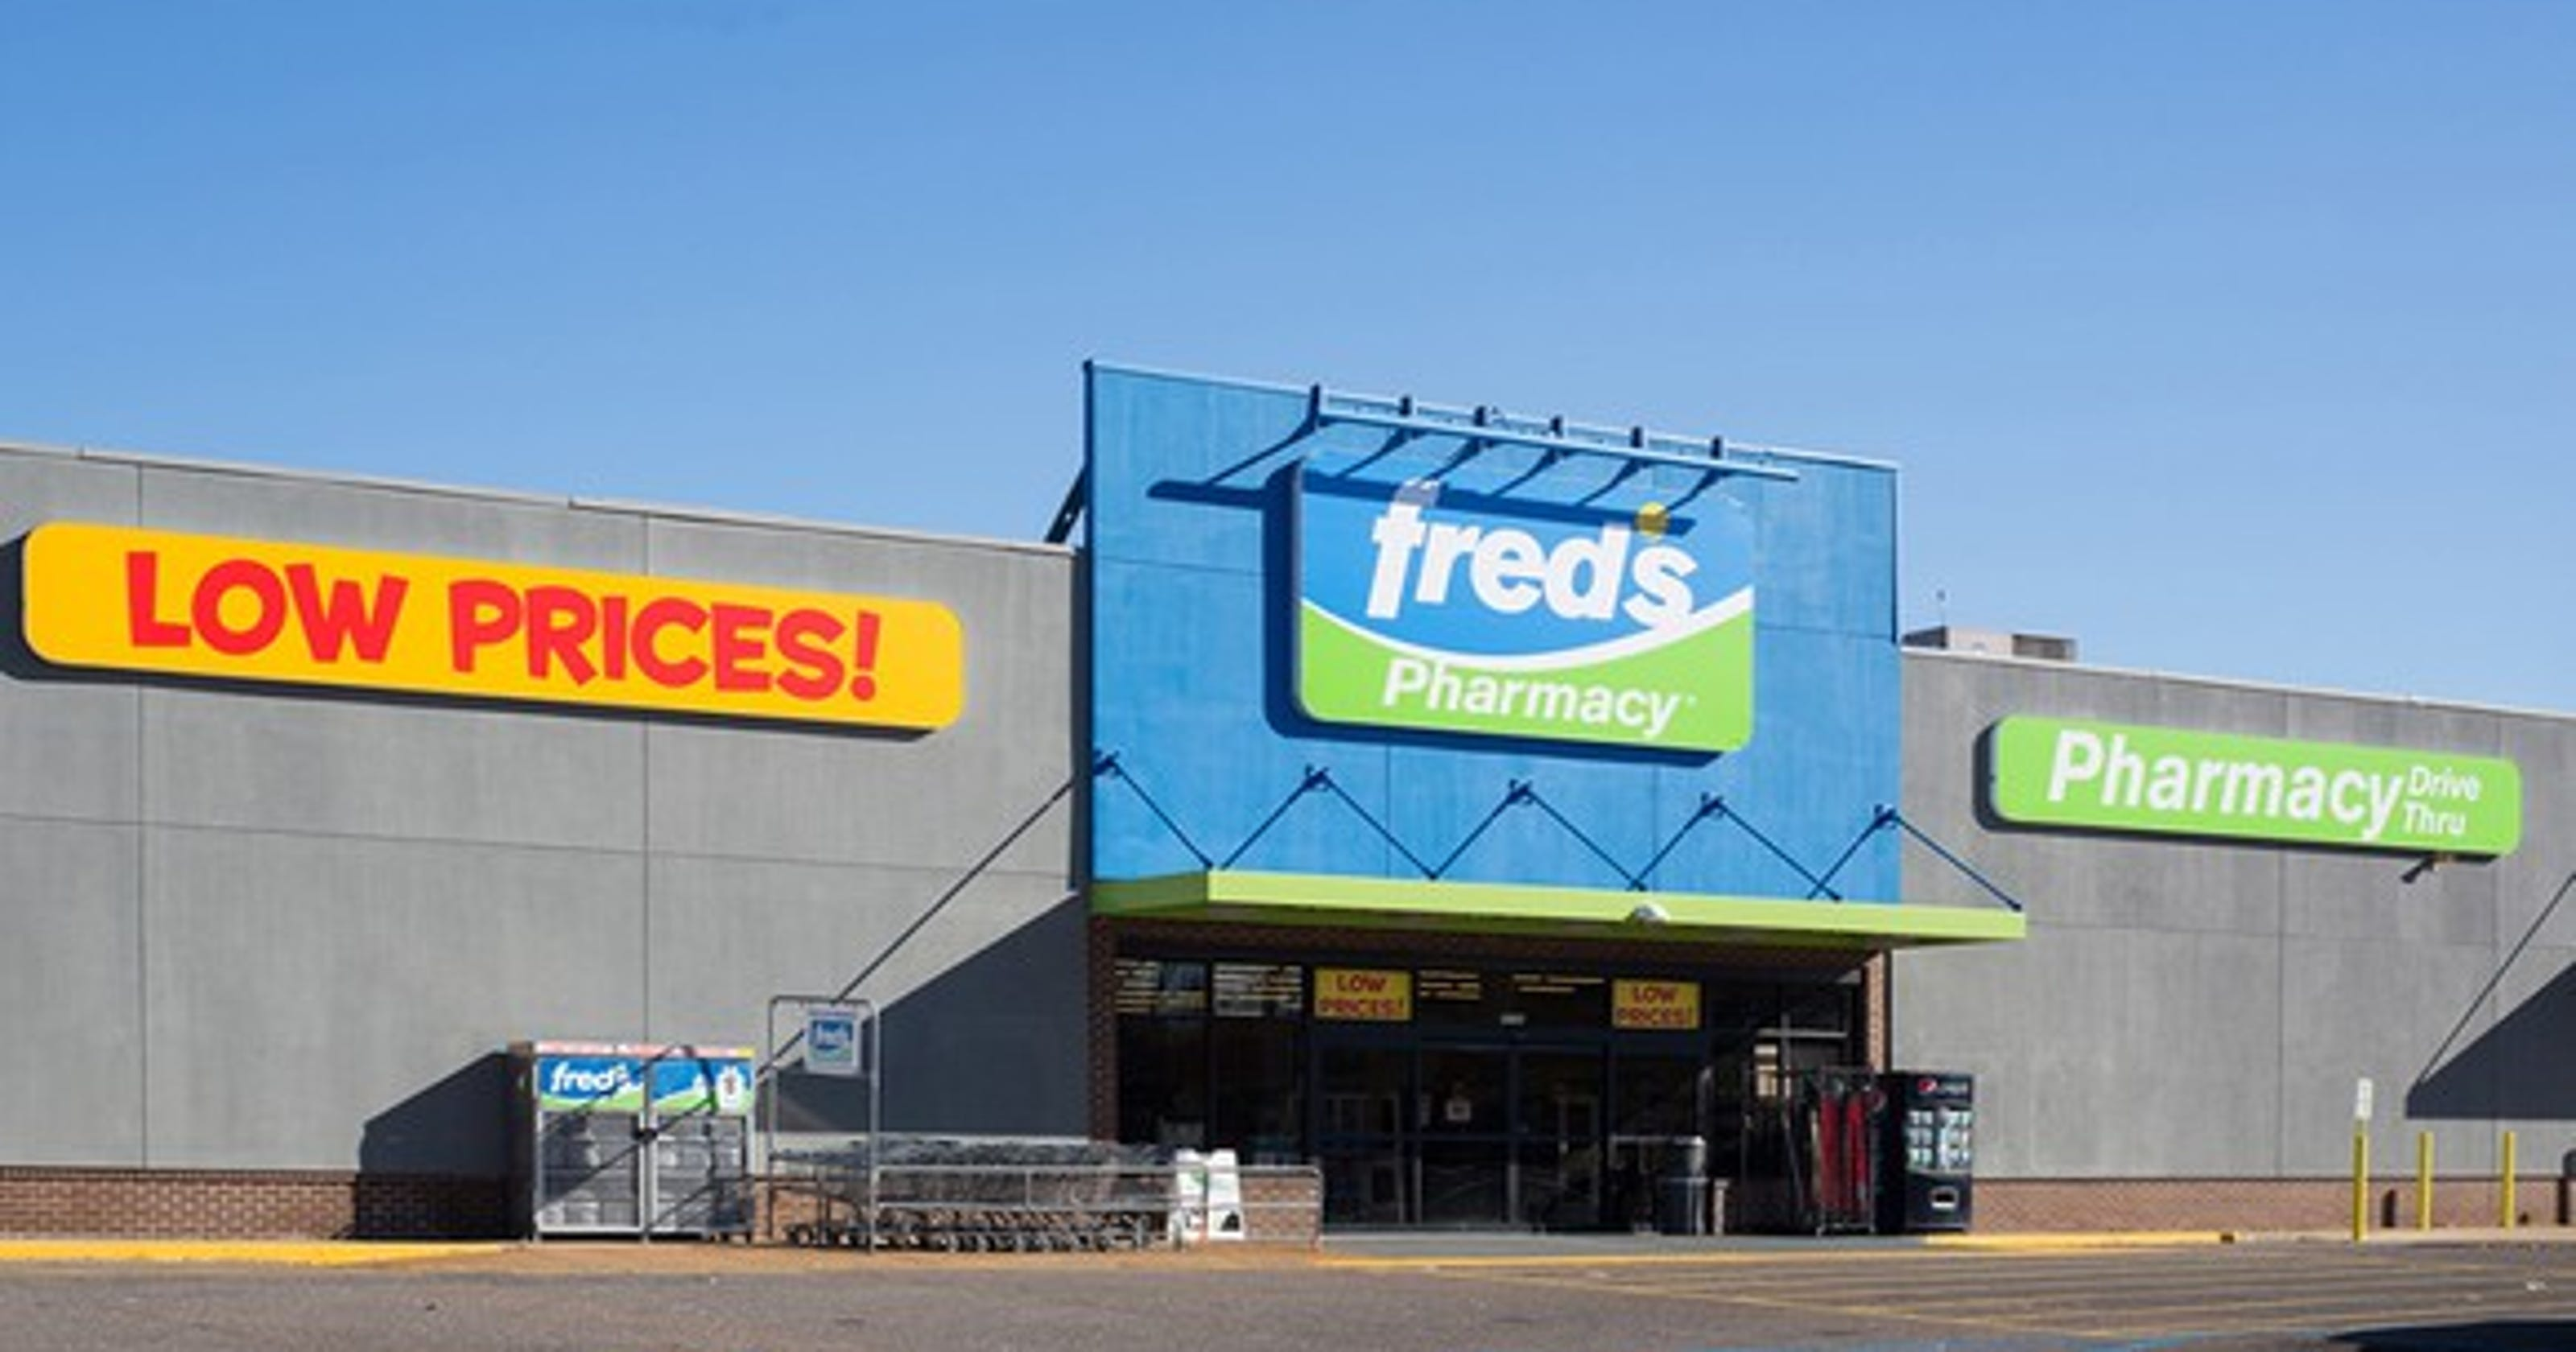 Freds Store Closings 2019 Discount Chain Shuttering 159 Stores